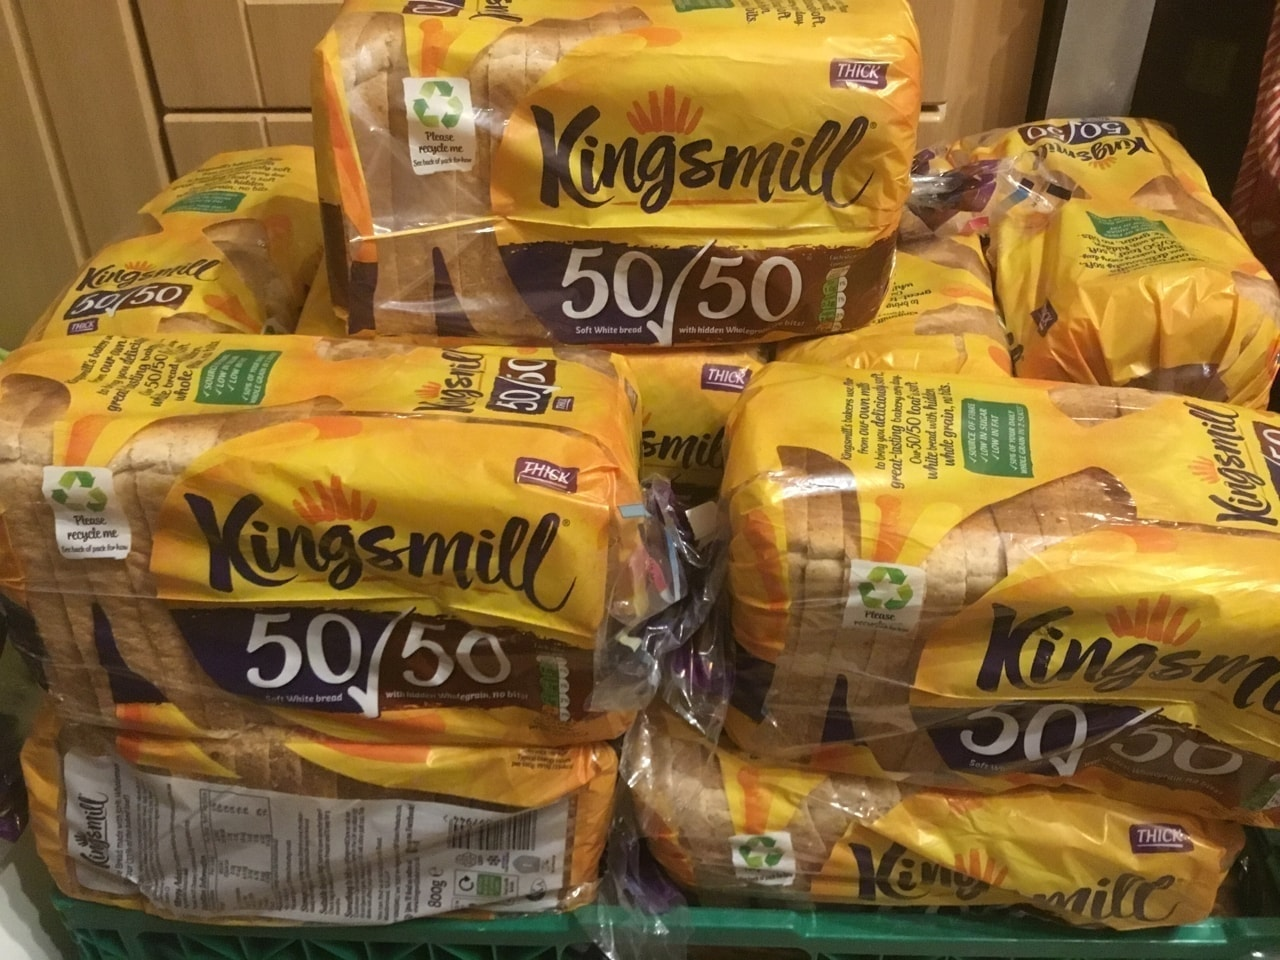 Kingsmill 50/50 thick x3